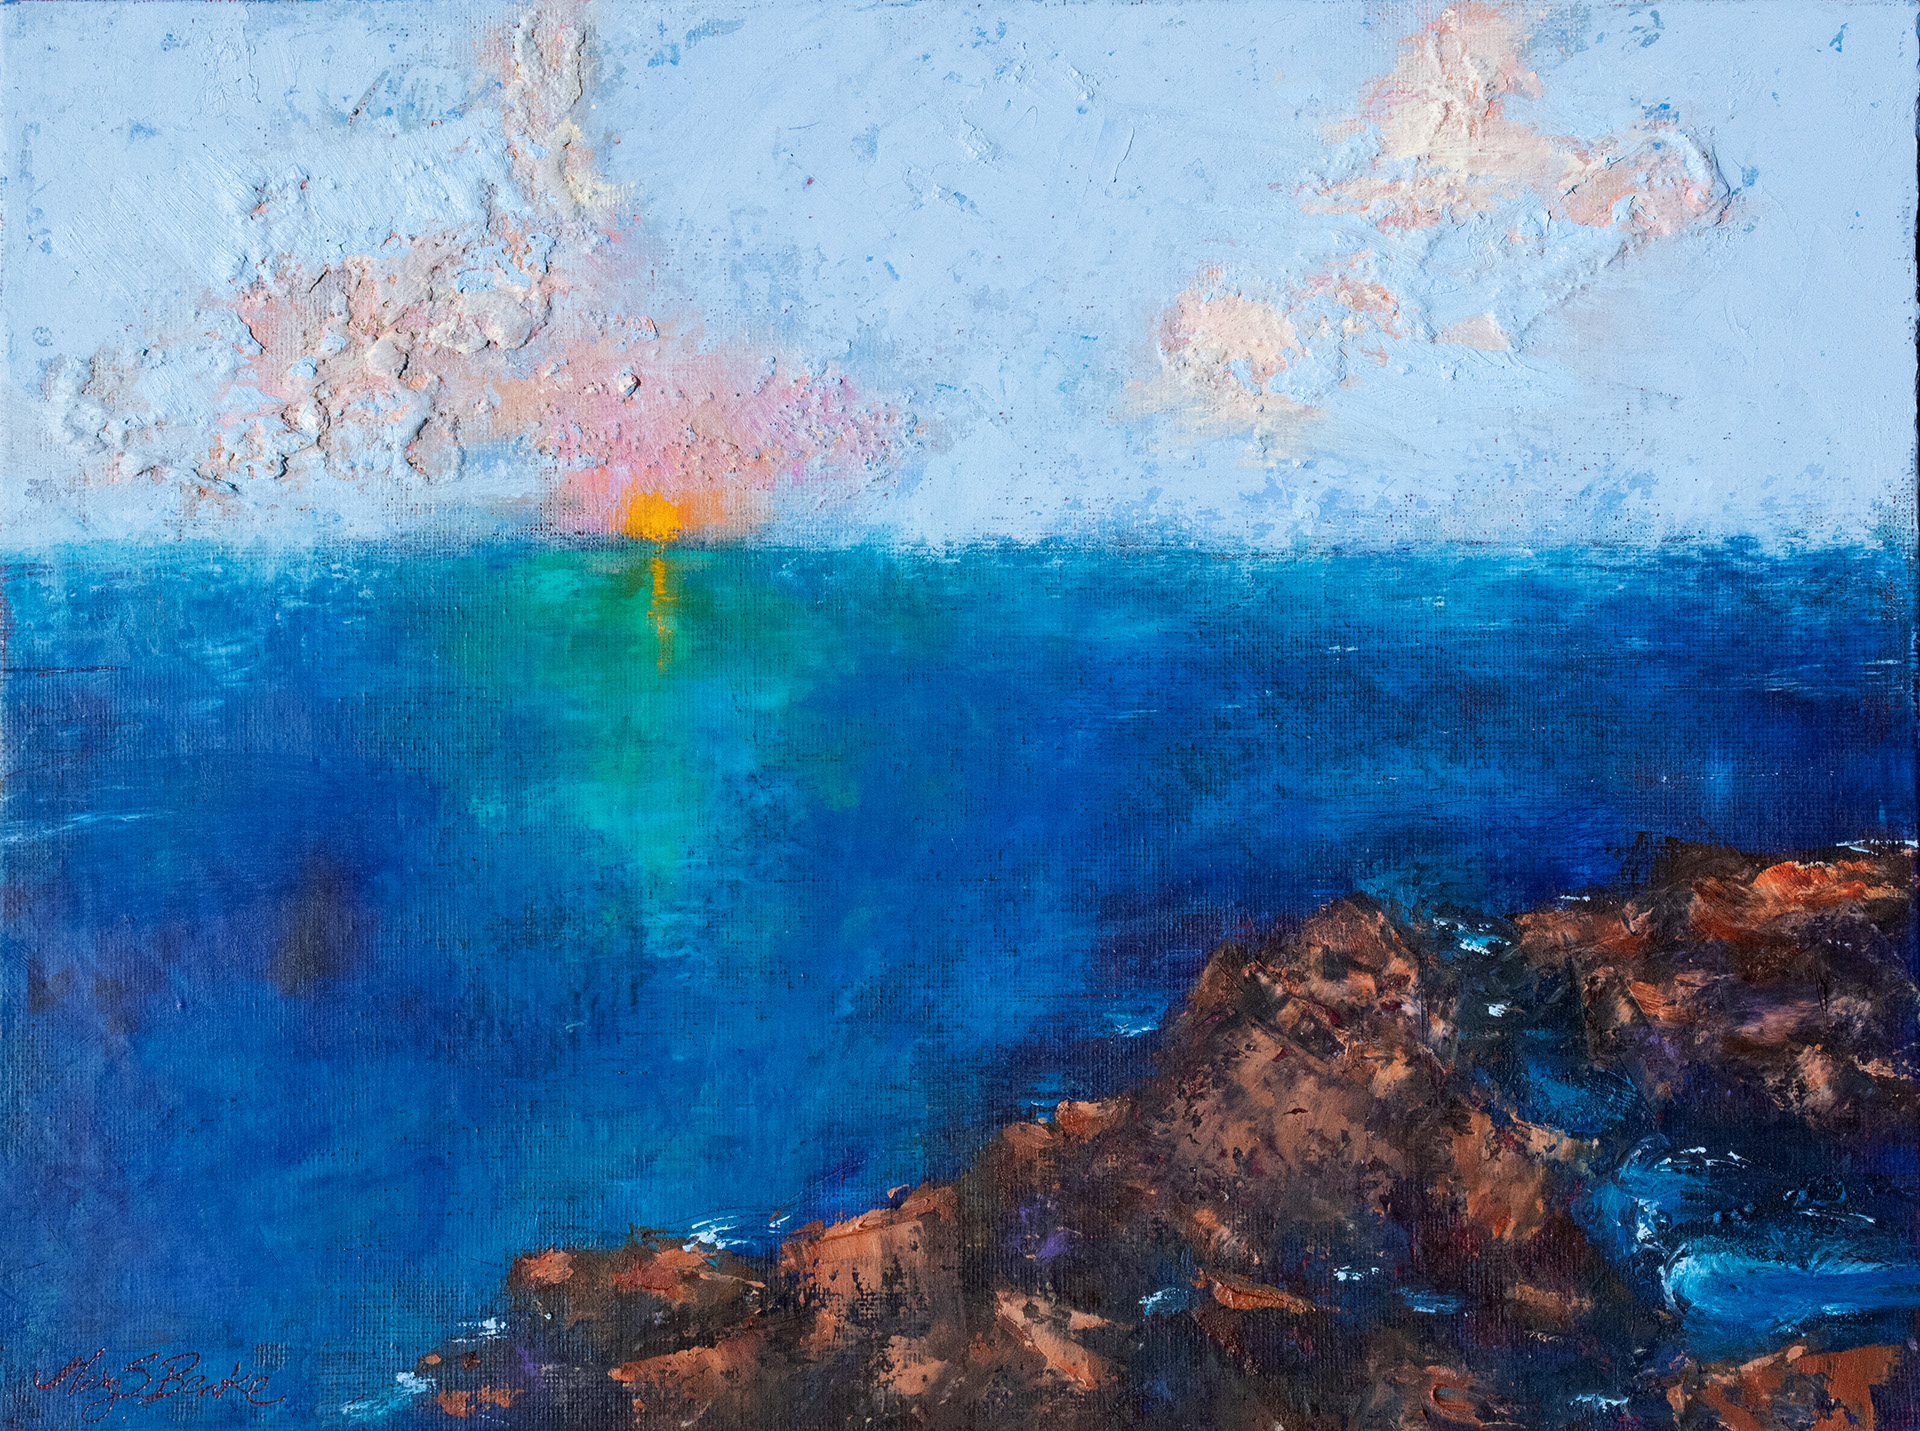 The setting sun makes a brilliant blue ocean glow in teals and greens in this colorful tropical oil painting by Mary Benke